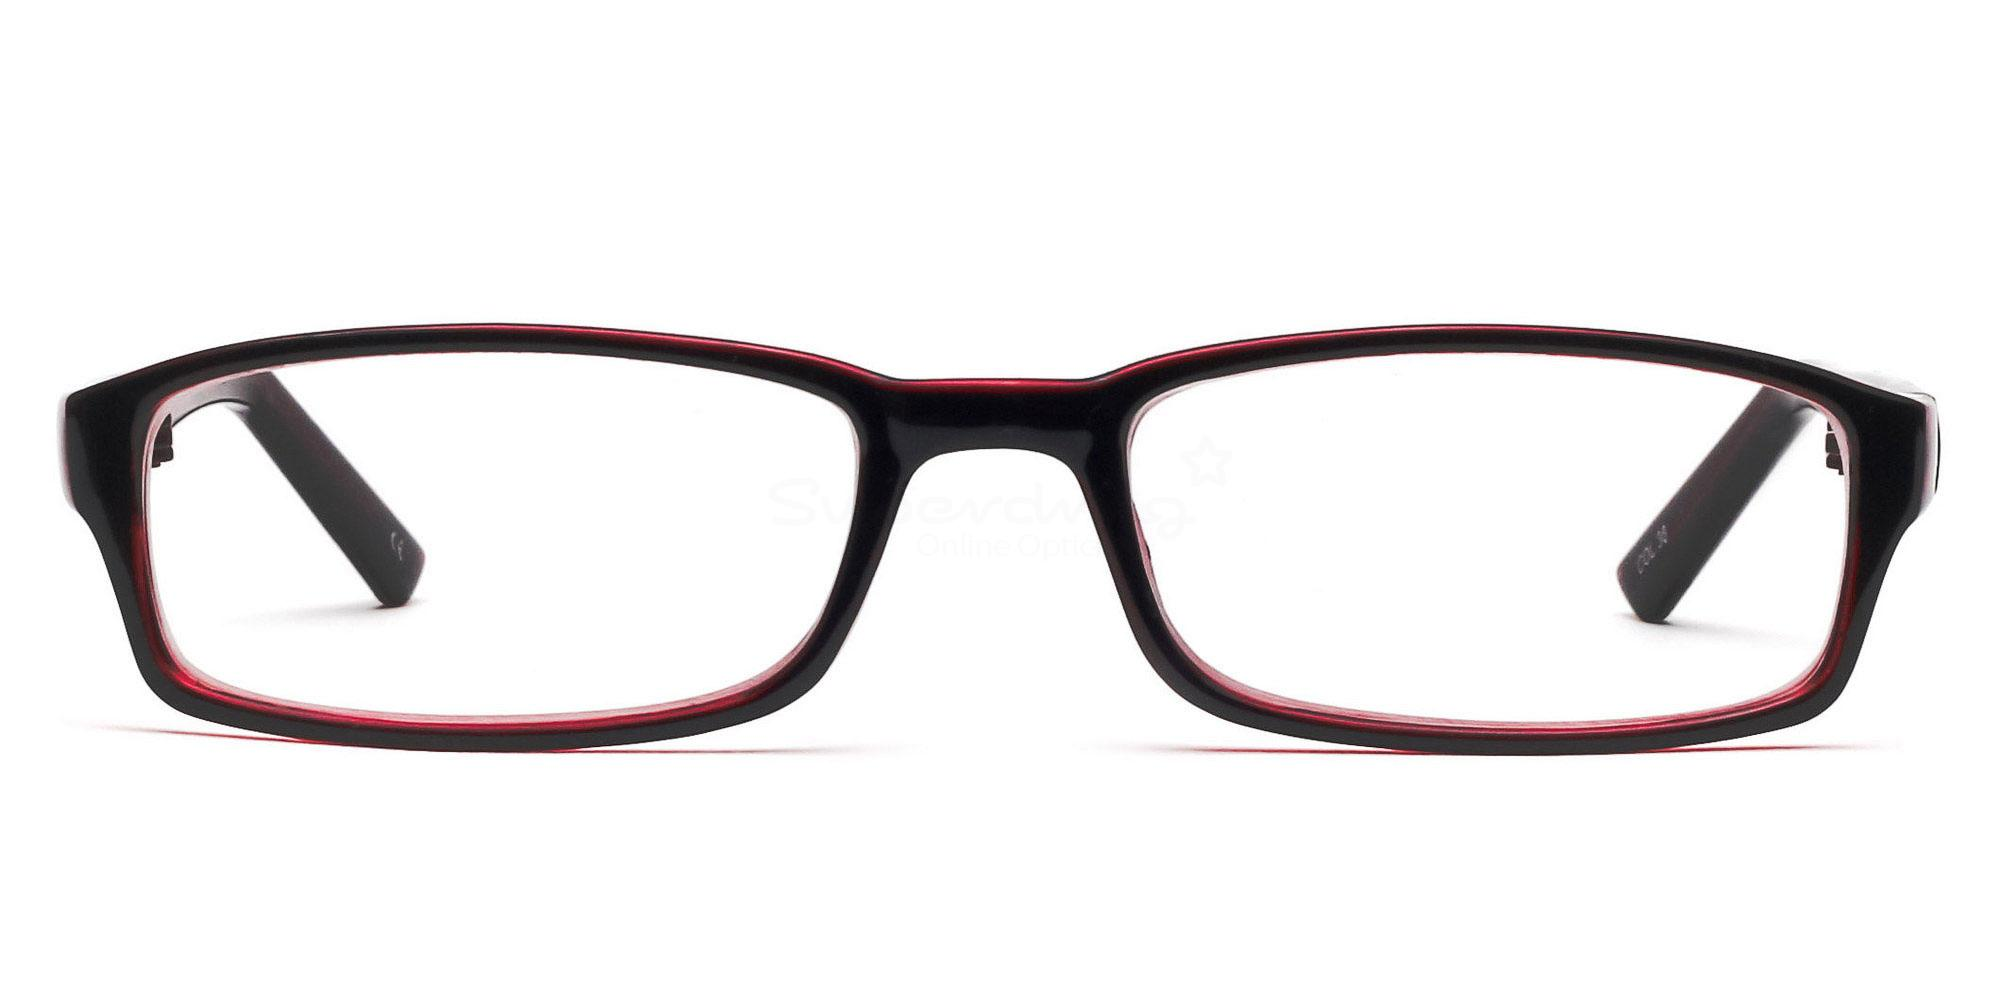 COL.38 2264 - Black and Red Glasses, Helium